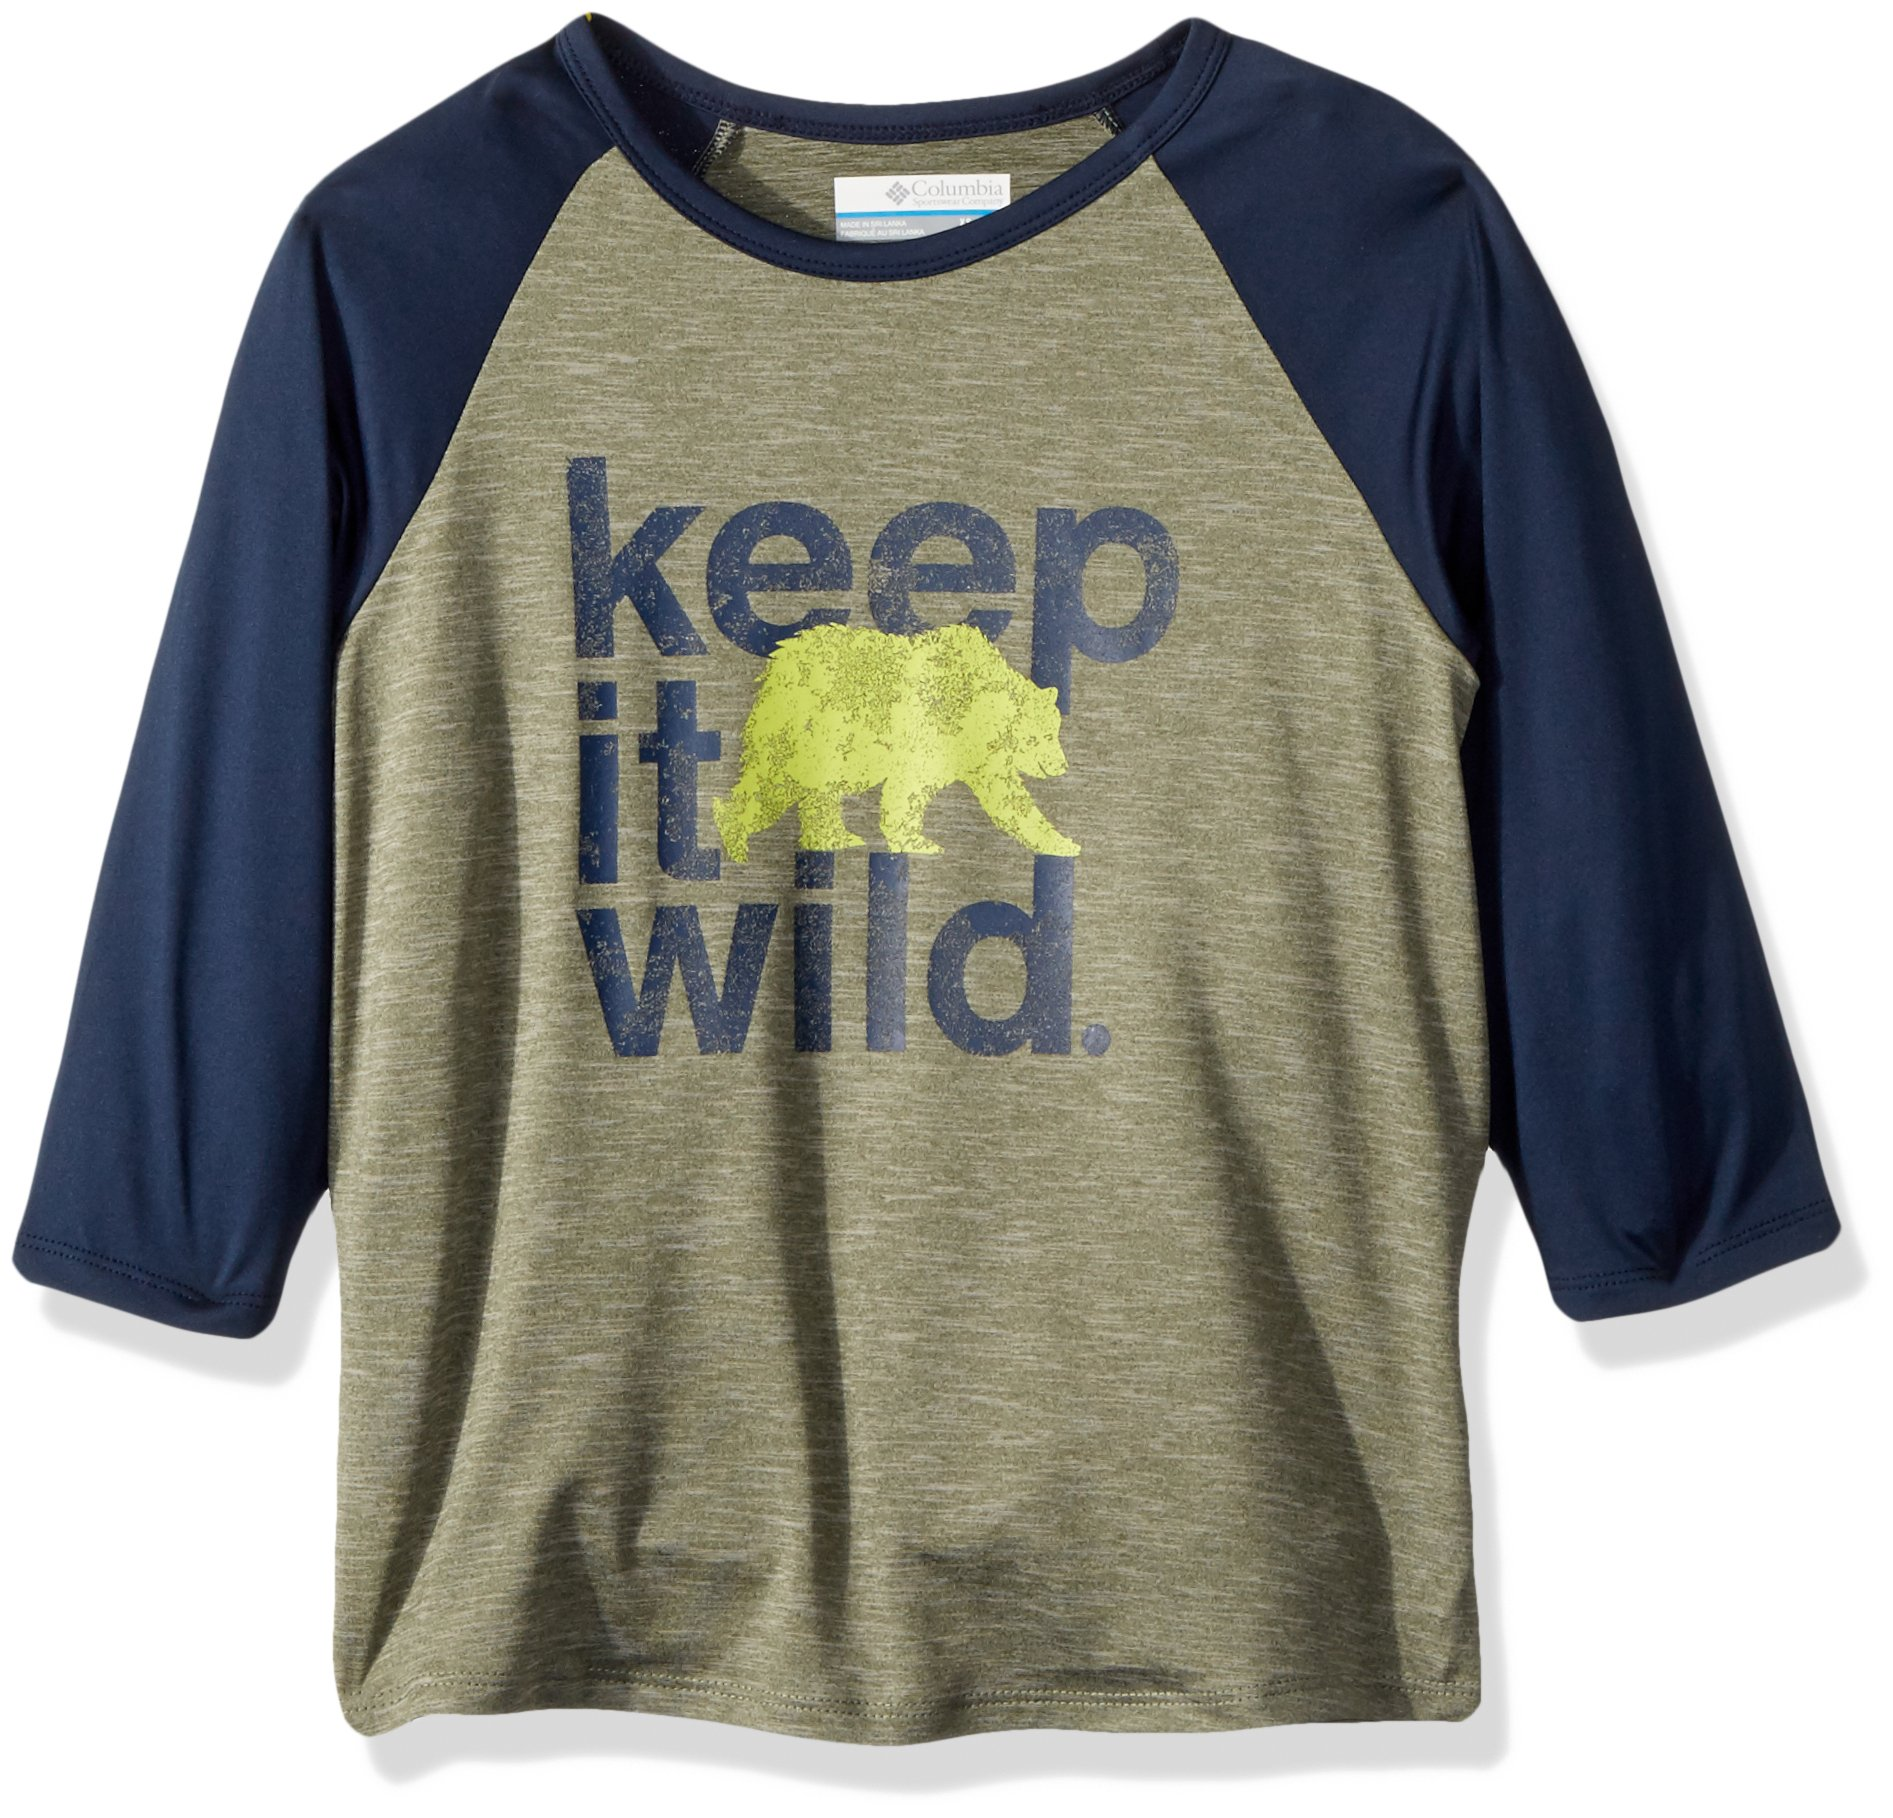 Columbia Boys Outdoor Elements3/4 Sleeve Shirt, Cypress Wild Graphic, Small by Columbia